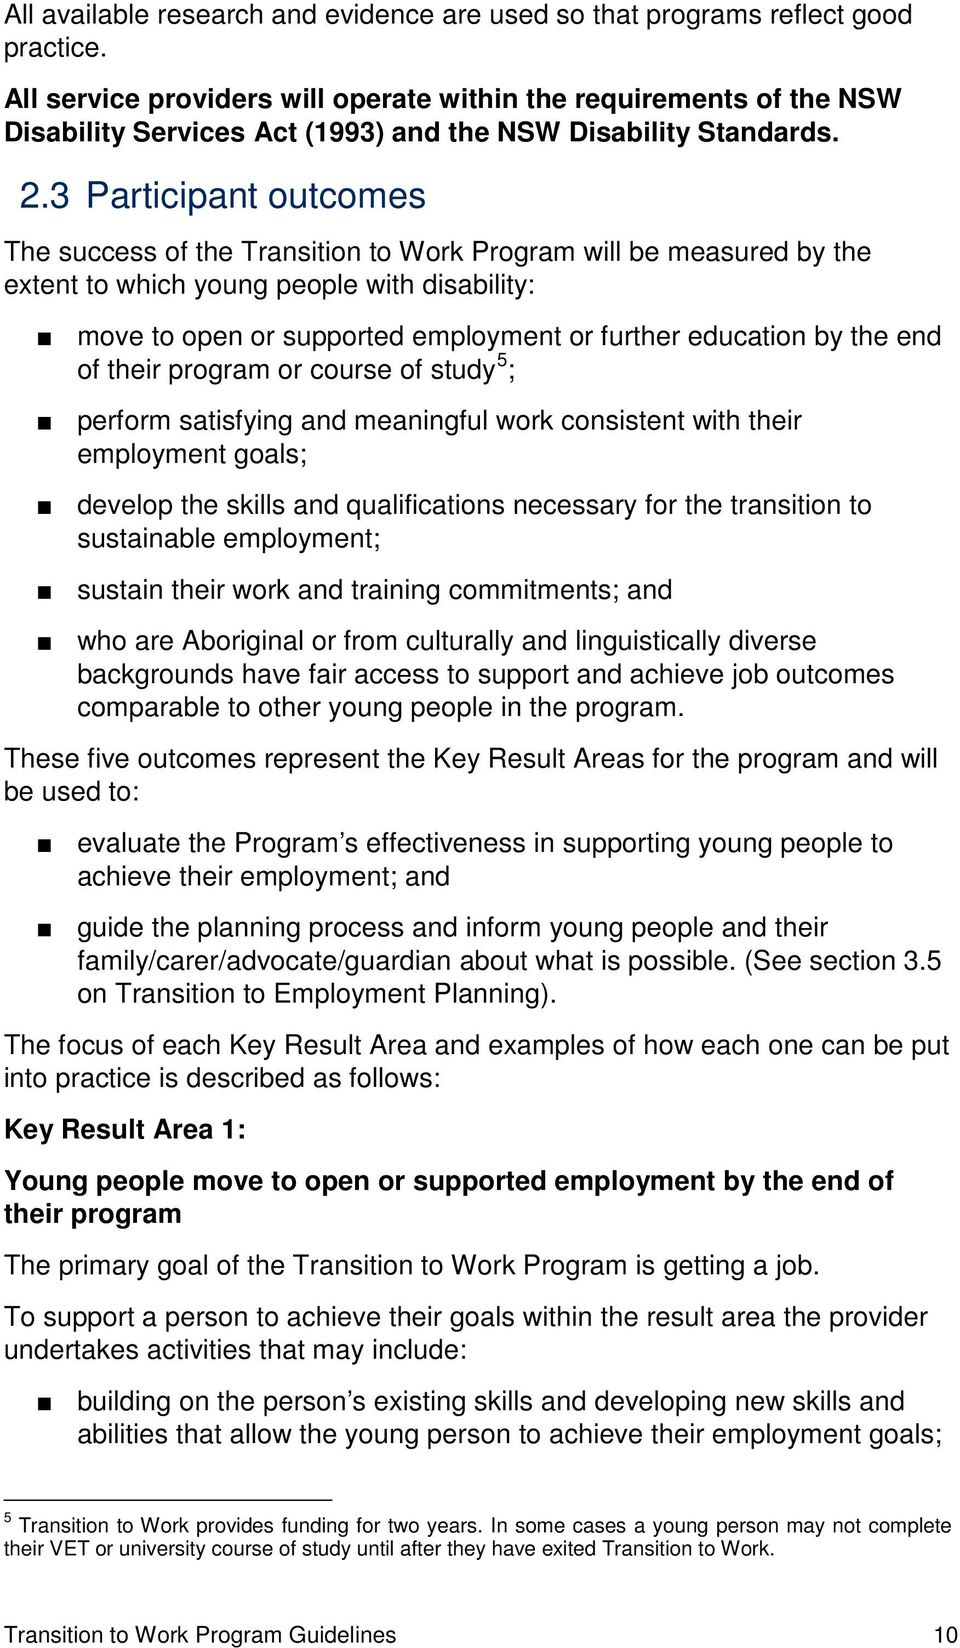 3 Participant outcomes The success of the Transition to Work Program will be measured by the extent to which young people with disability: move to open or supported employment or further education by